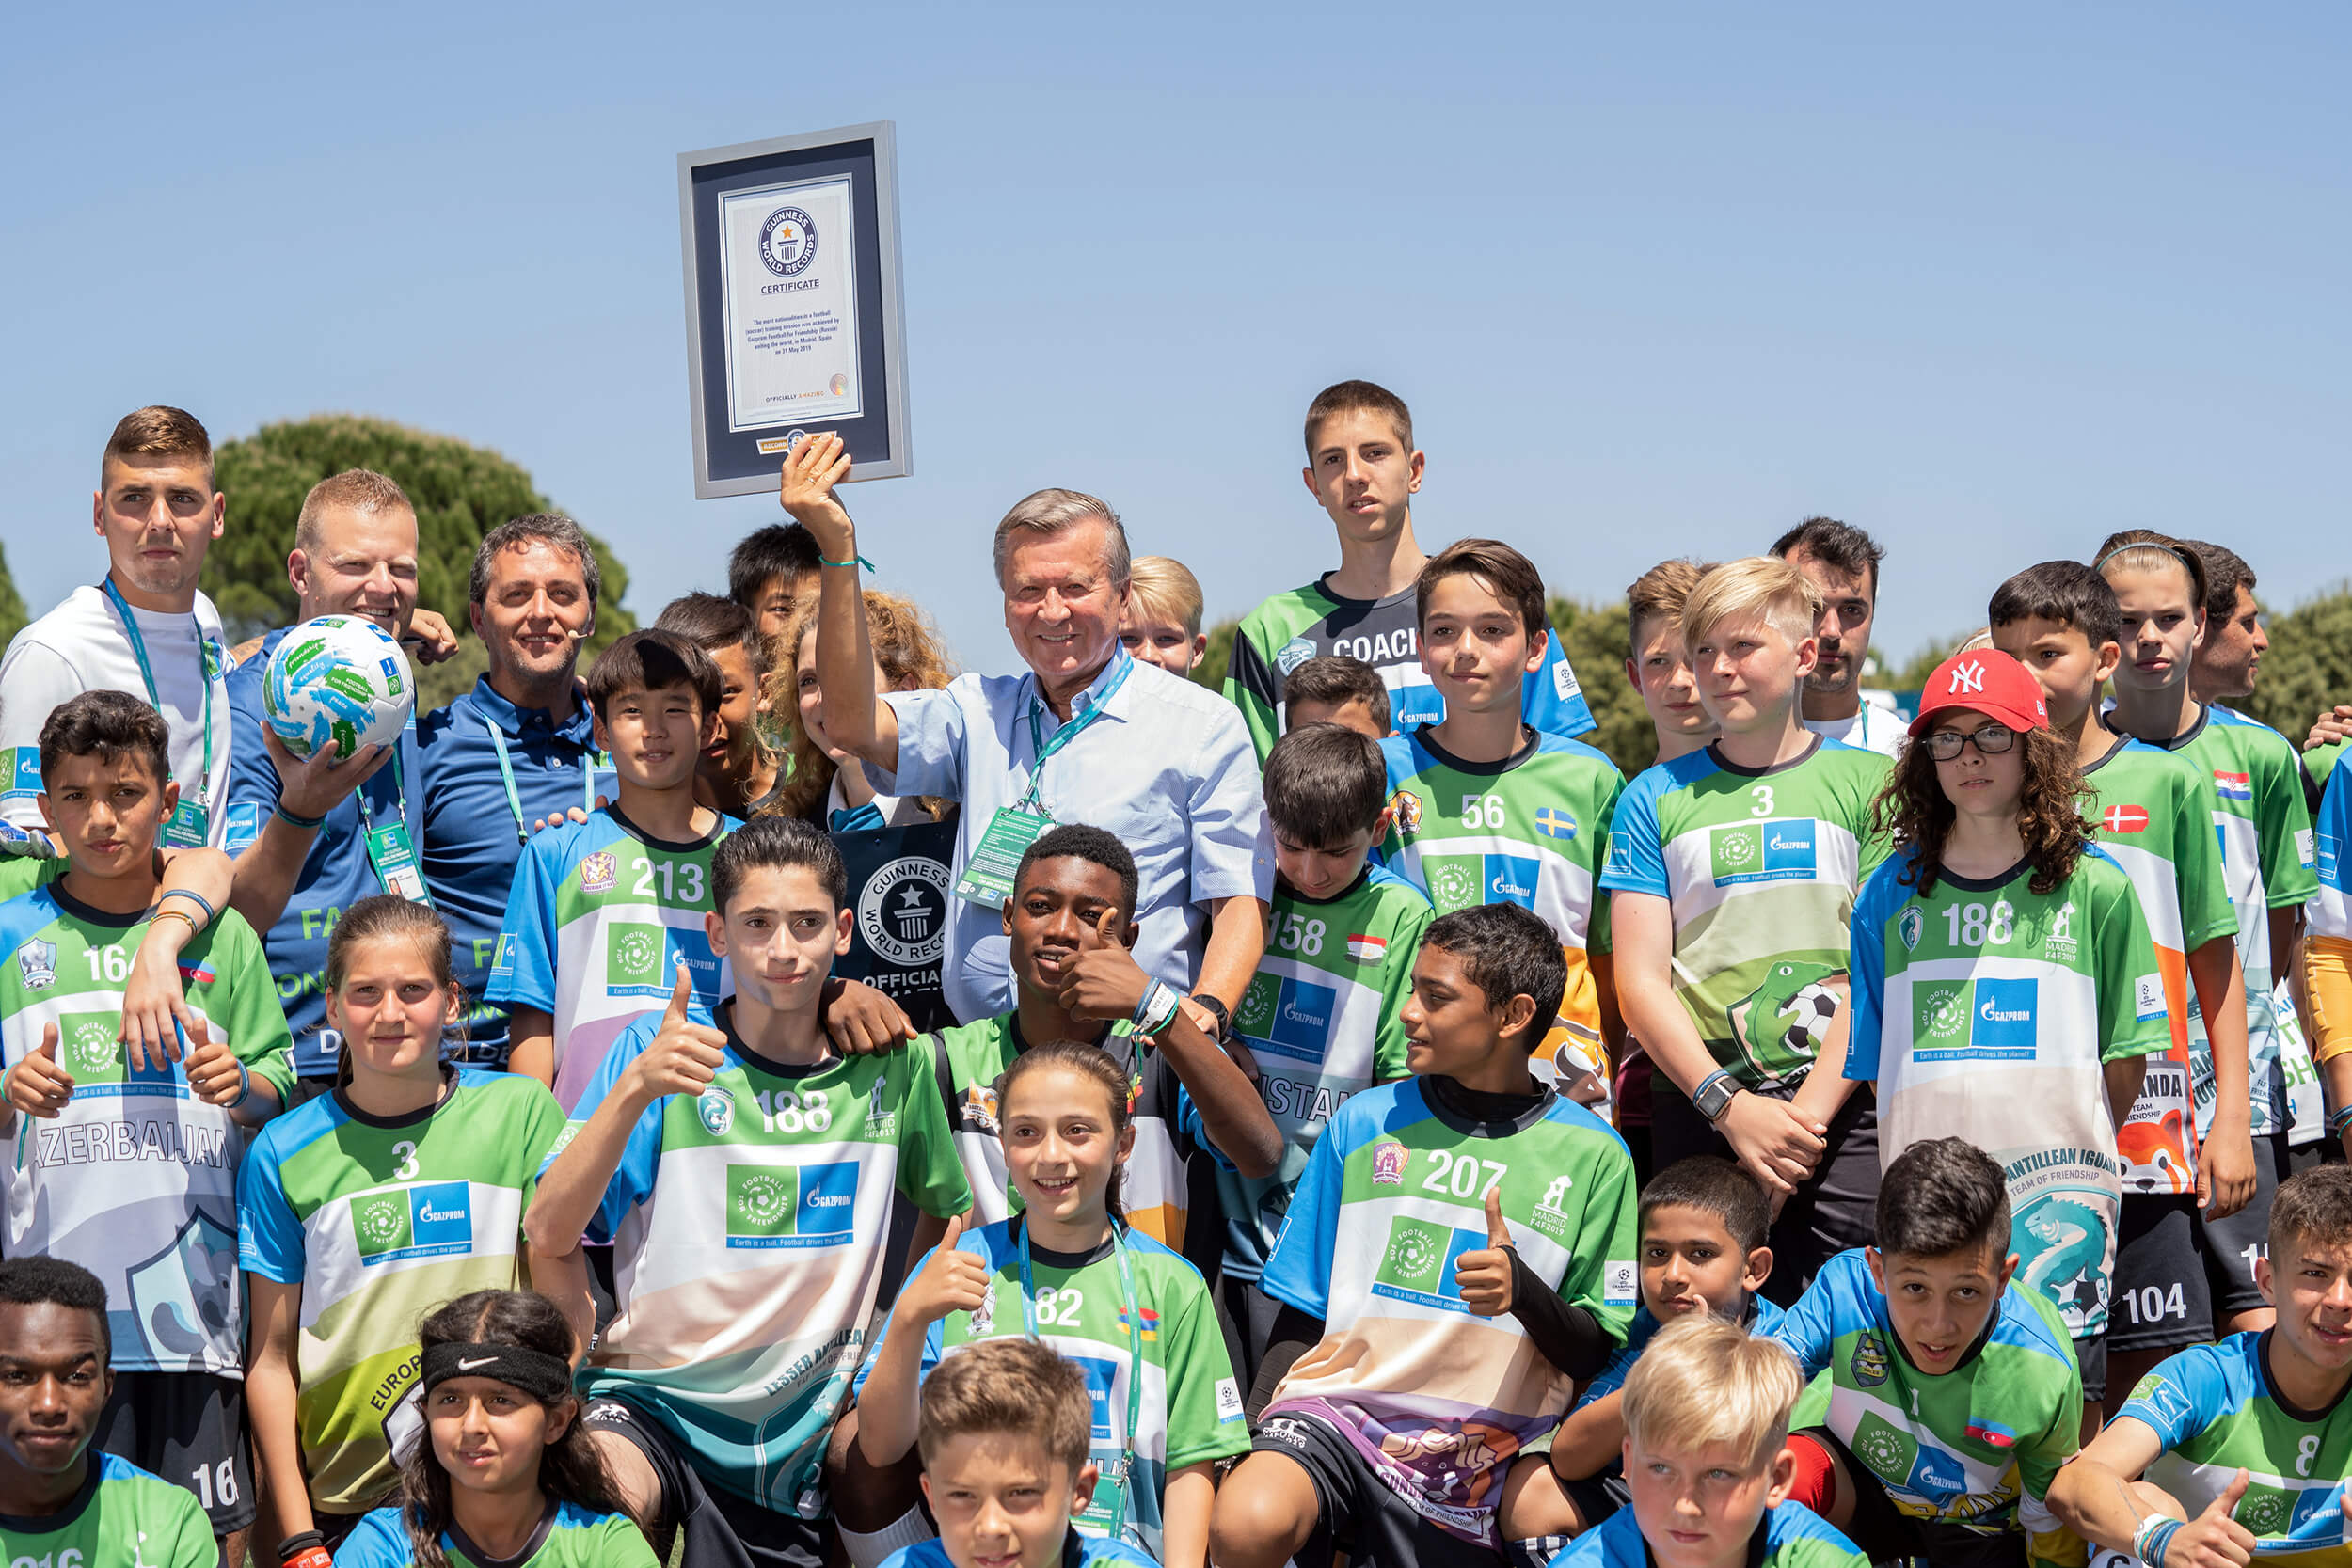 gazprom-football-for-friendship-event-sports-ventures-GUINNESS-WORLD